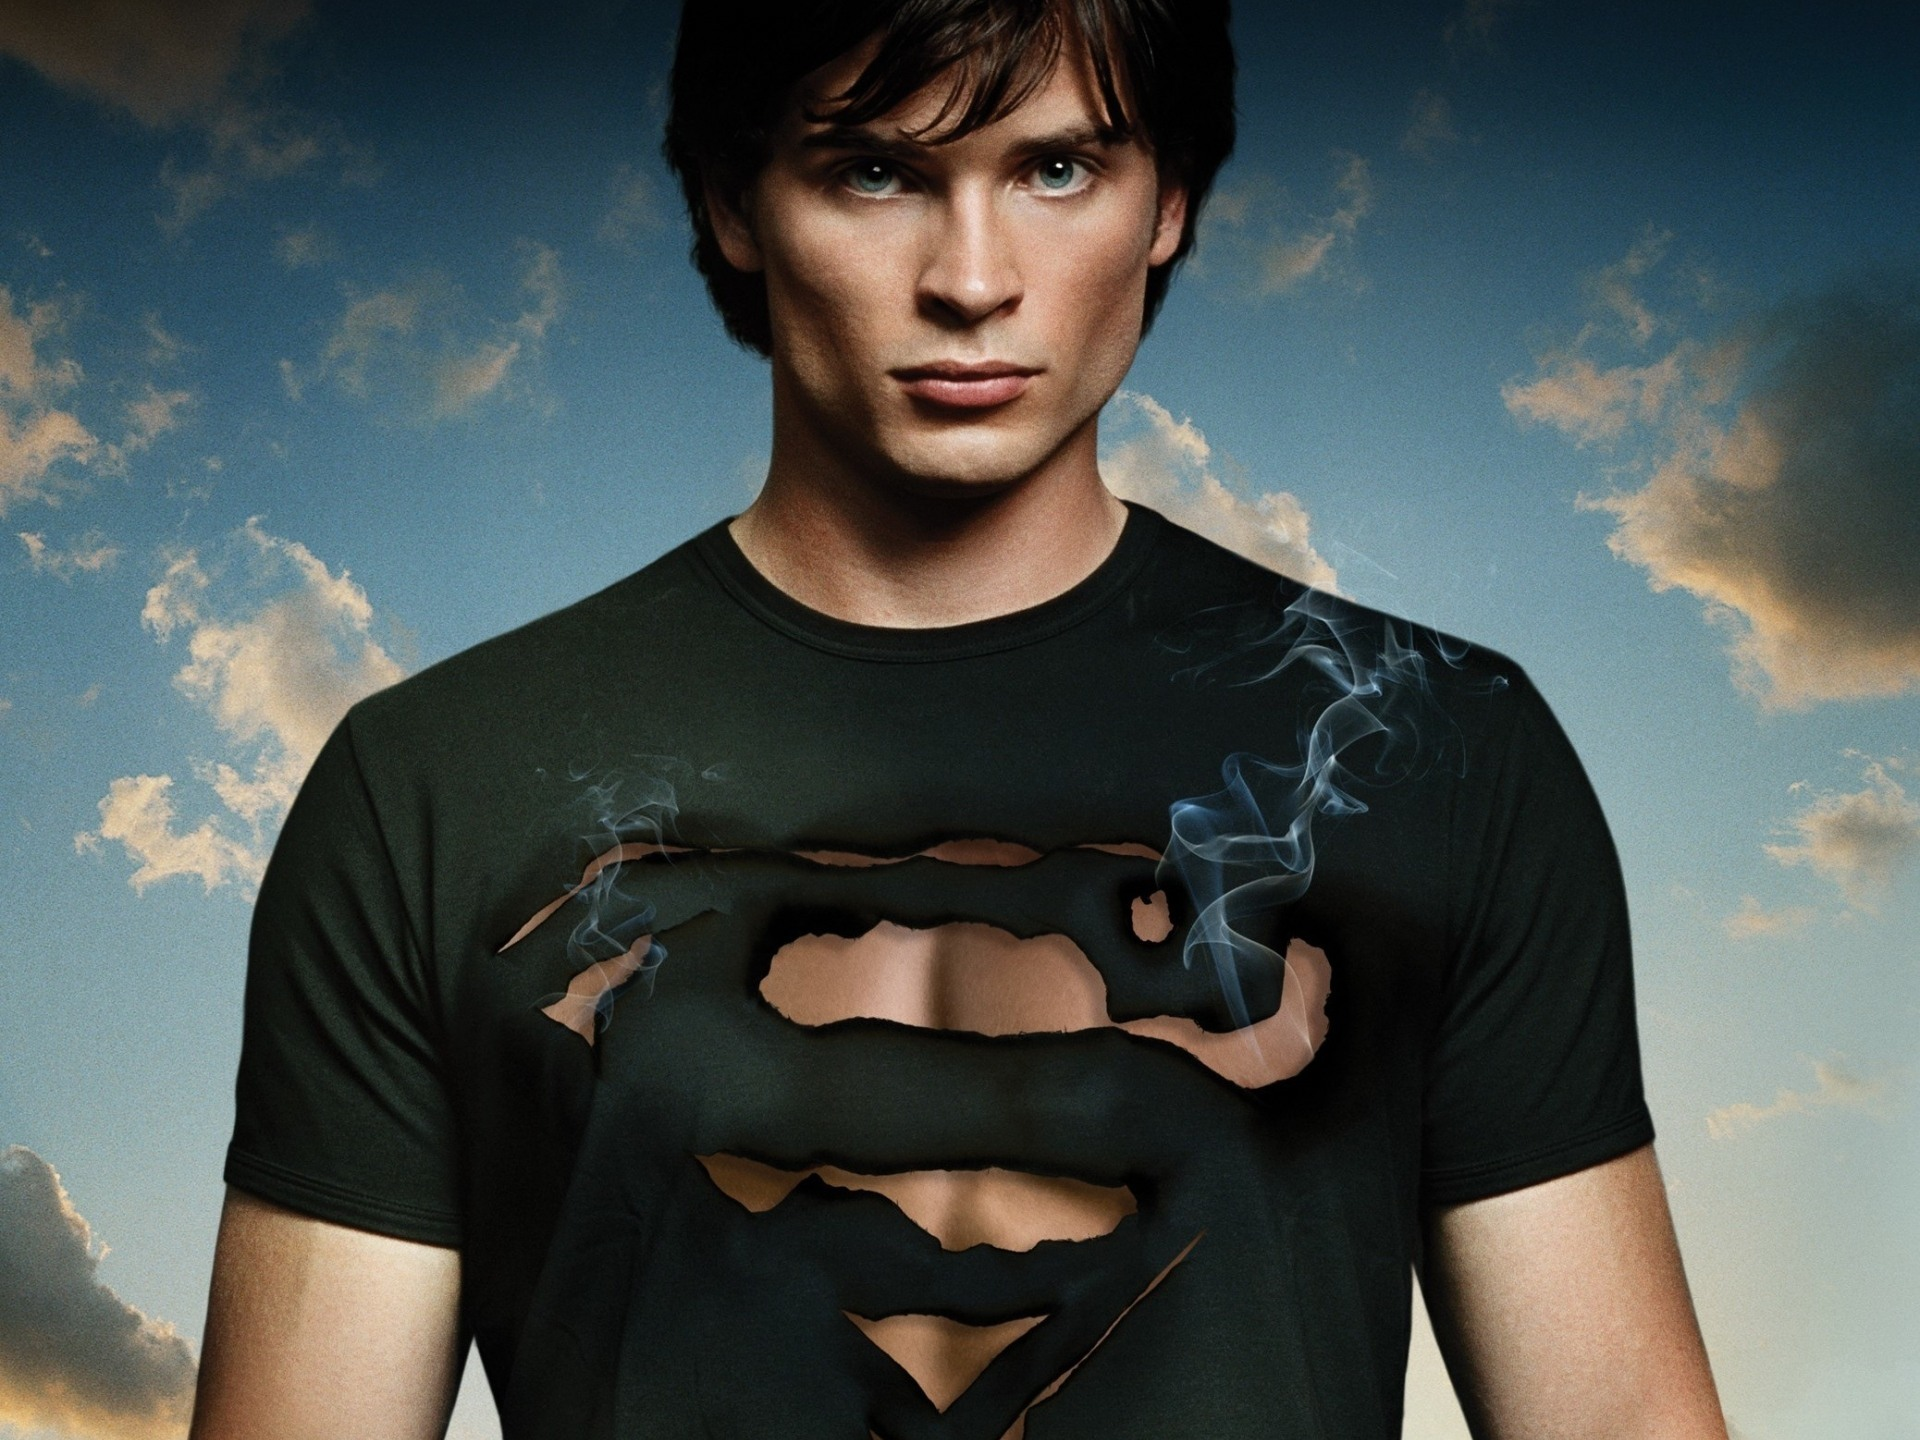 superman Smallville tom welling HD Wallpaper